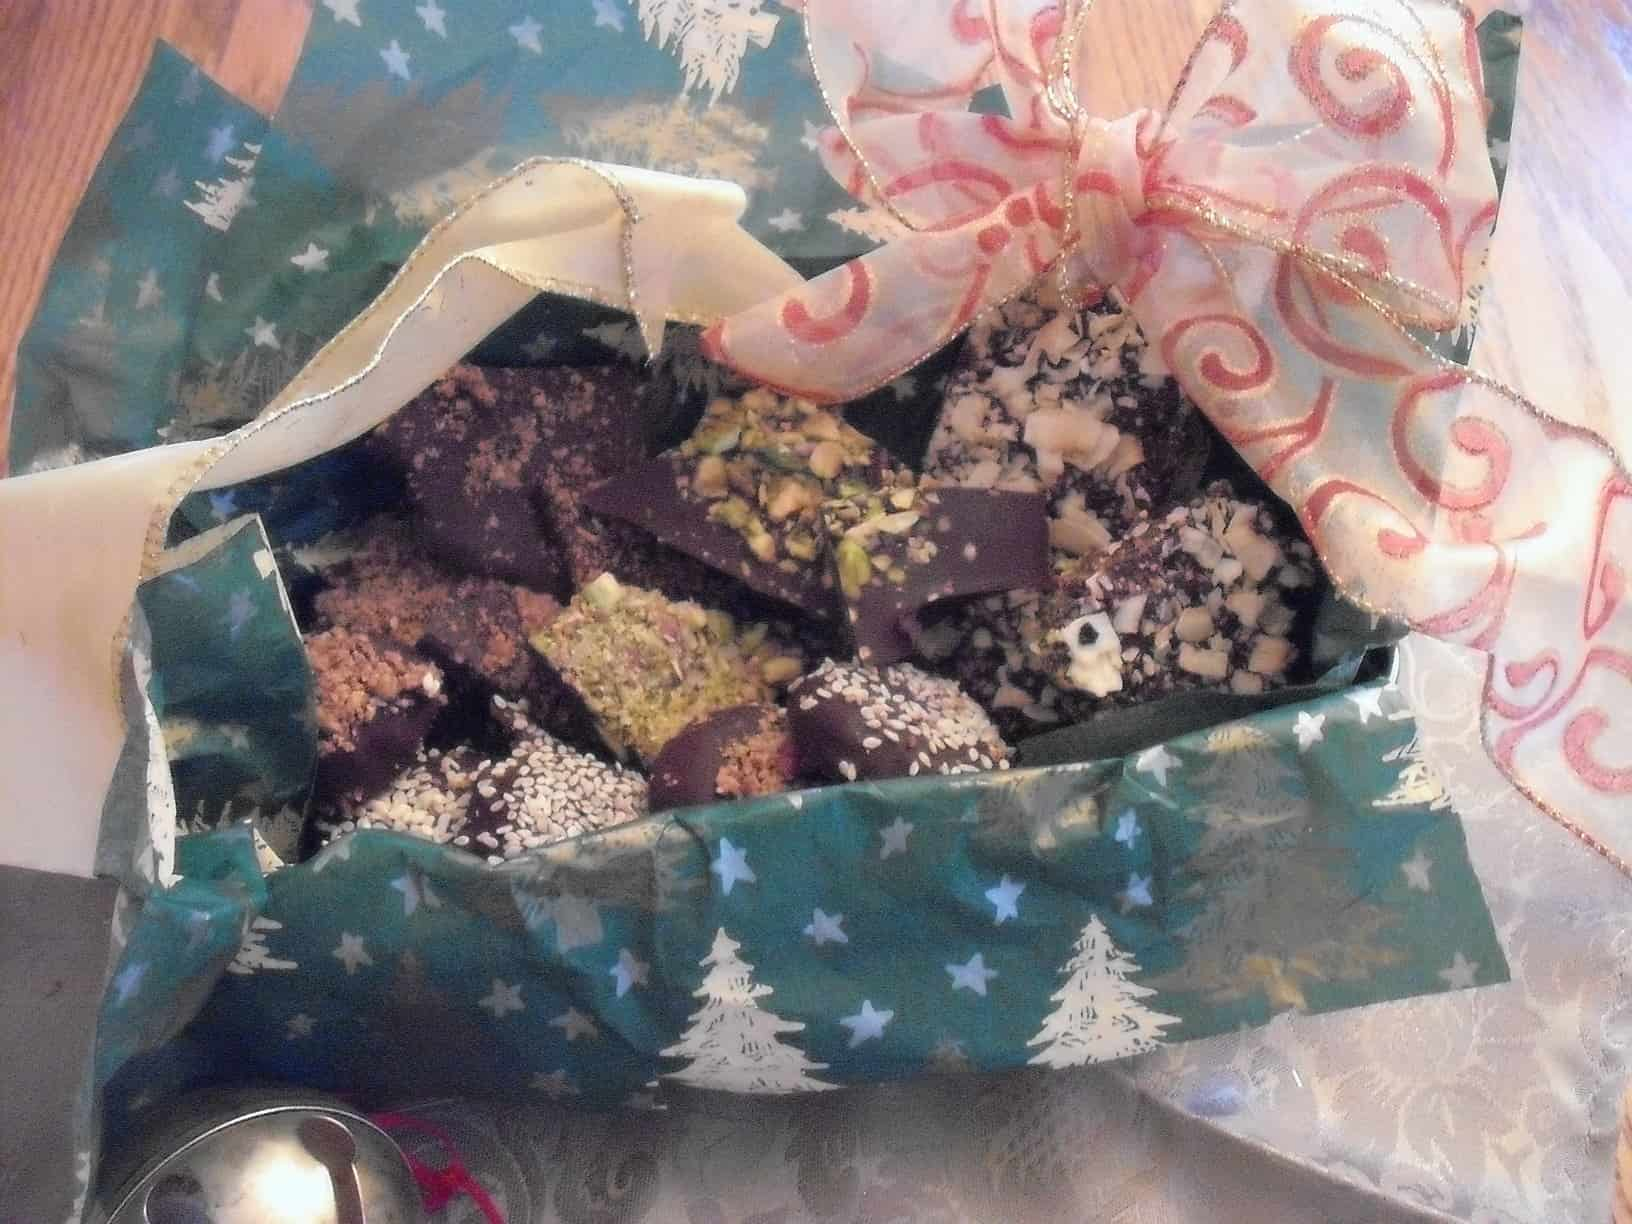 Gluten-Free Goodies for That Last-Minute Holiday Treat